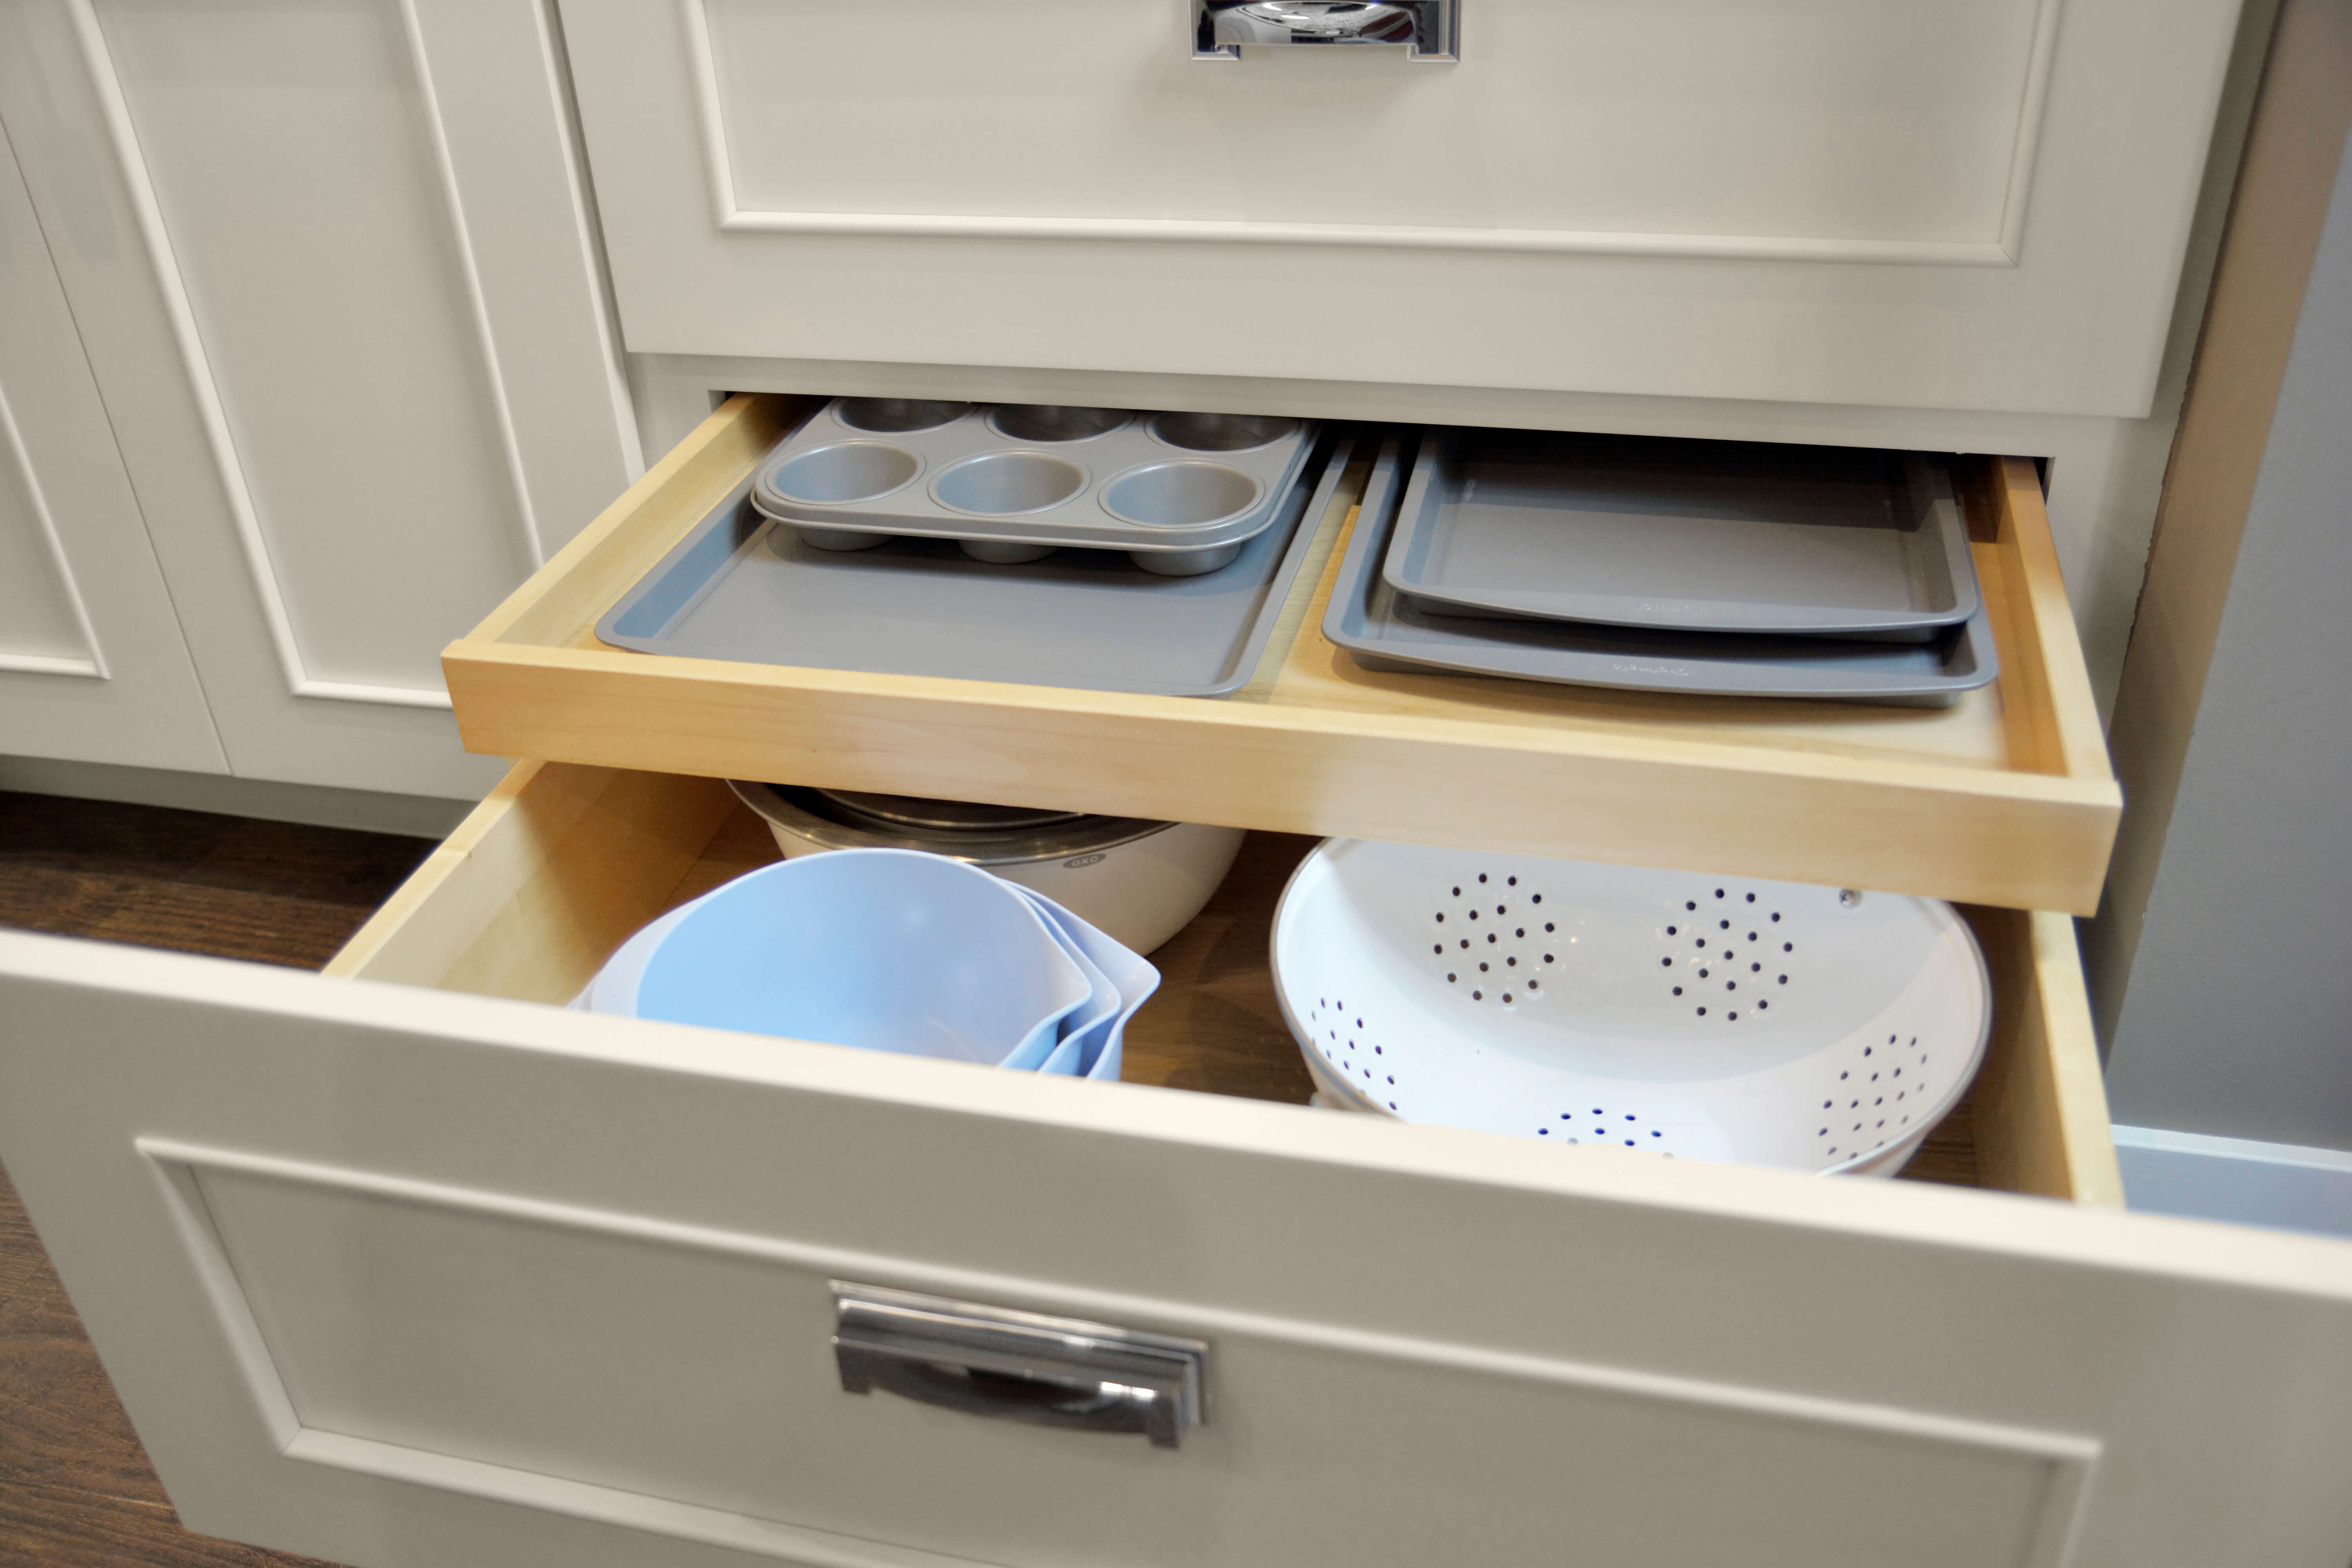 Shallow Roll-Out Above Drawer - Pan Storage